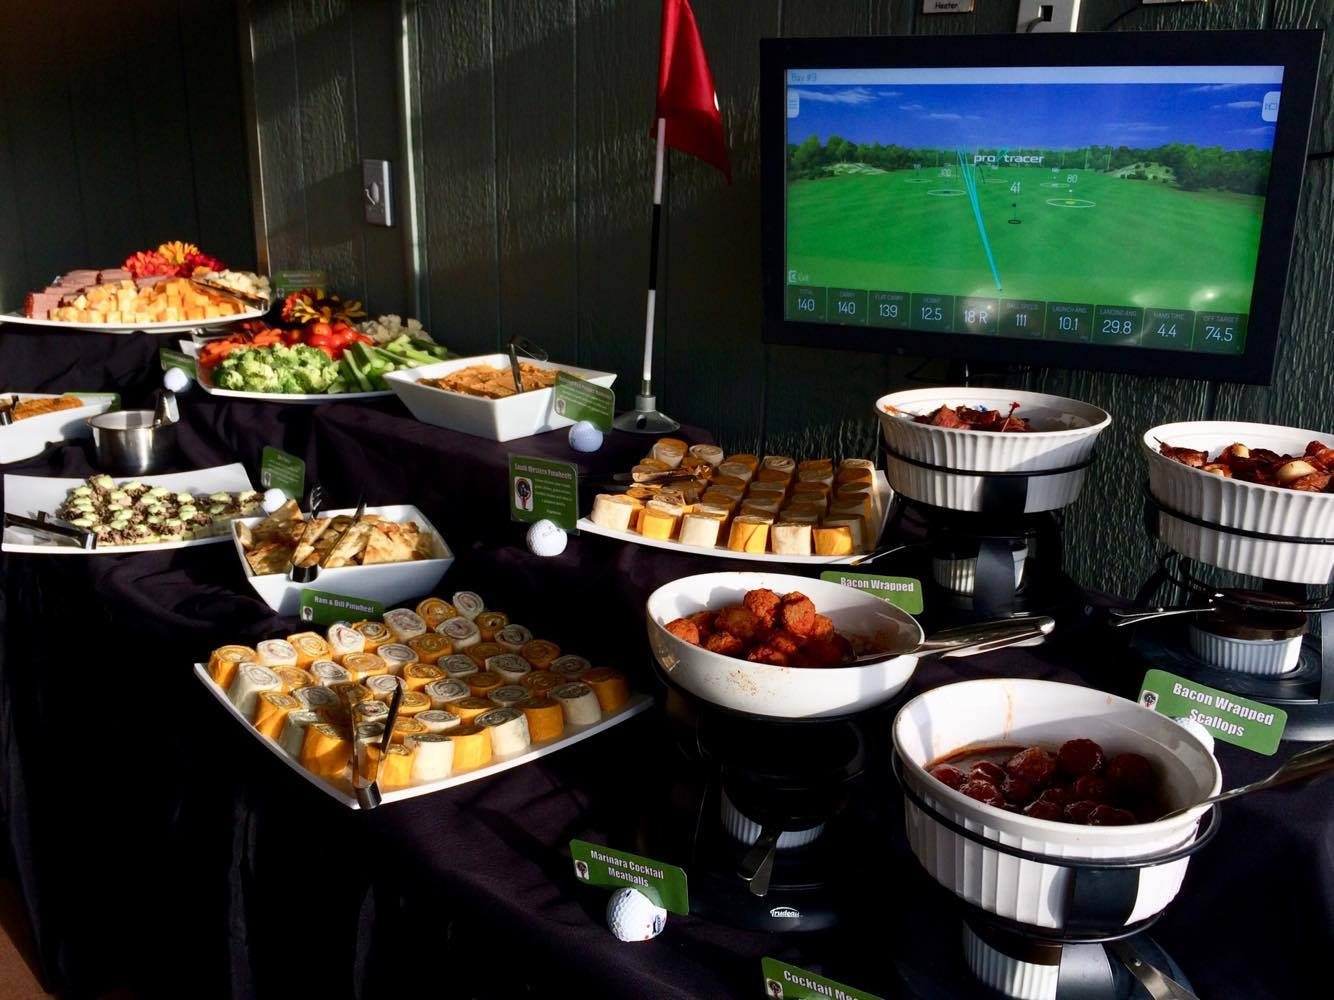 Buffet and TopTracer in the Suites